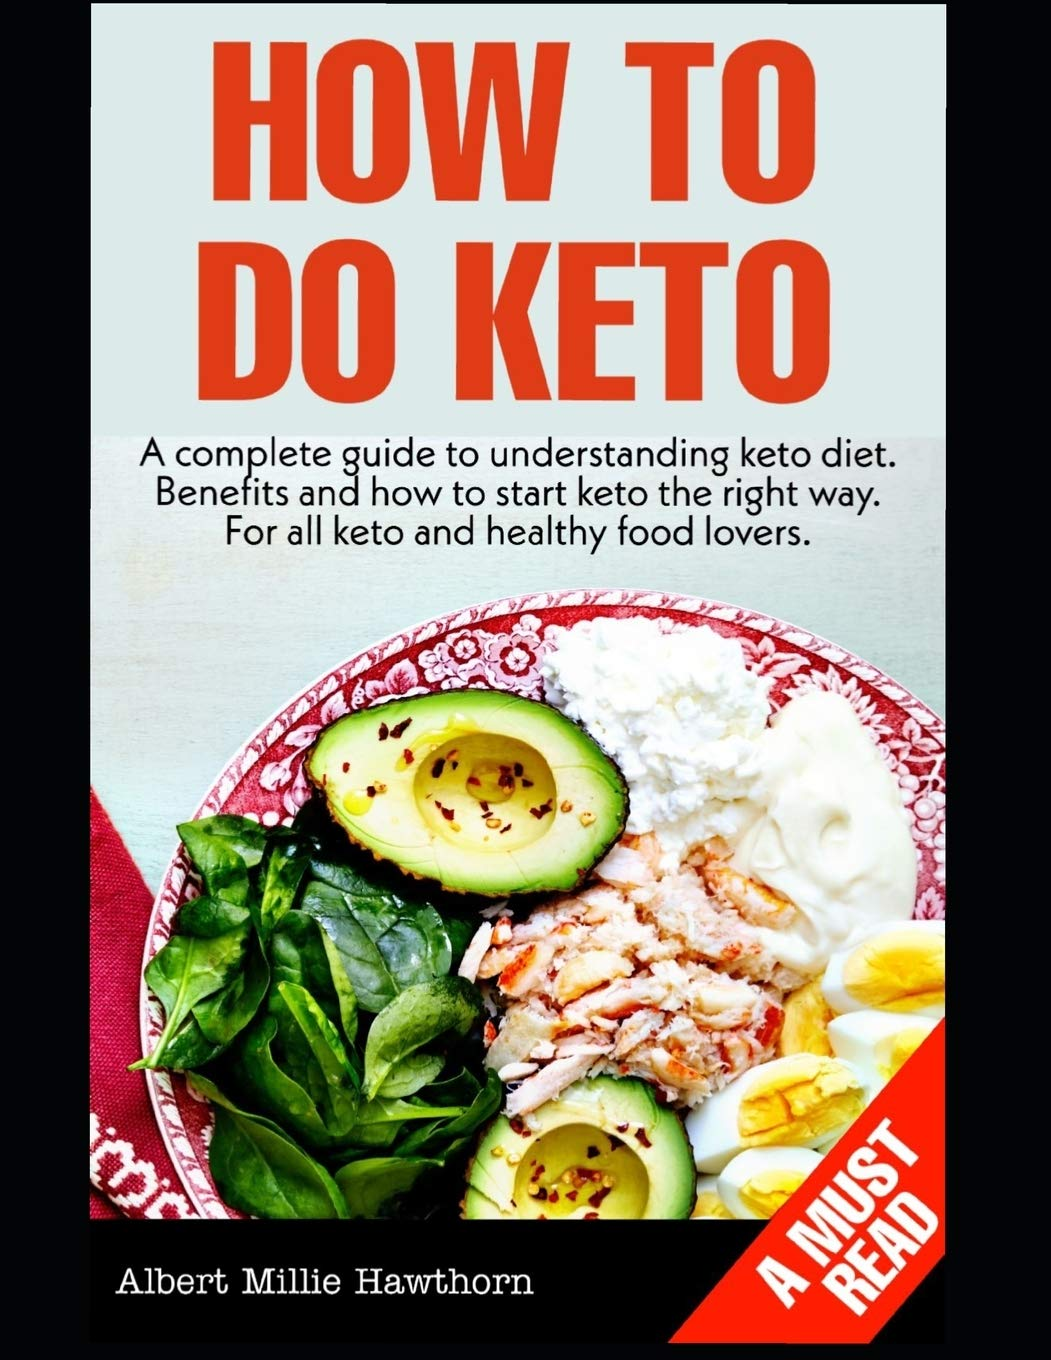 do keto diet the right way